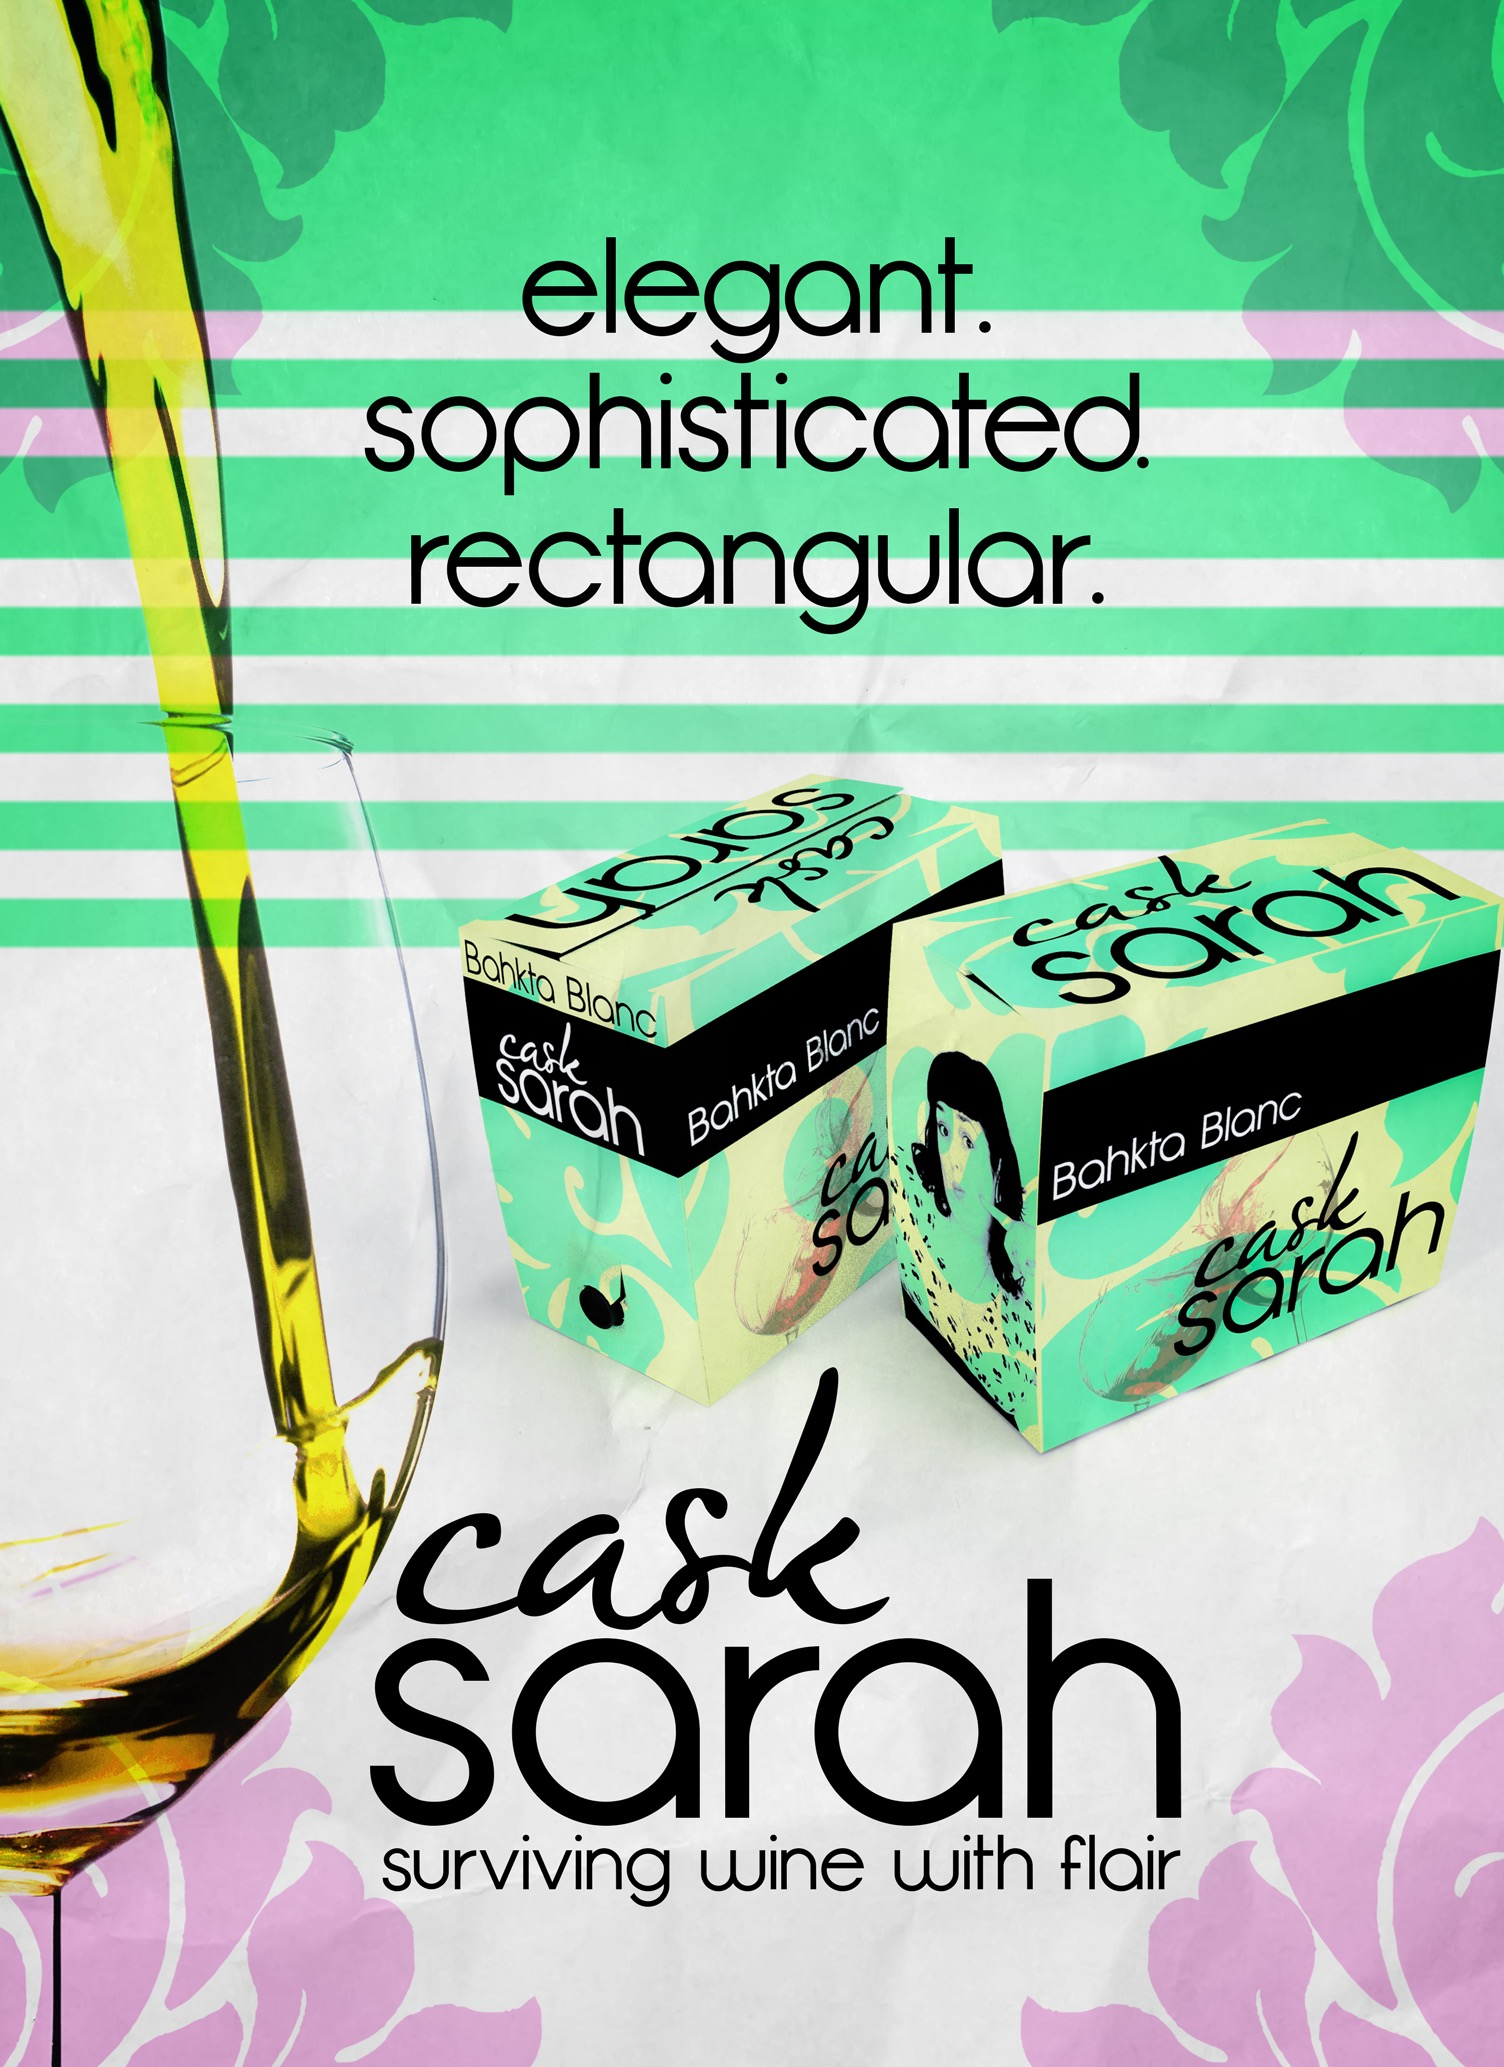 OMG! I Can Finally Tell You About Cask Sarah! {Yes! My Very Own Boxed Wine}